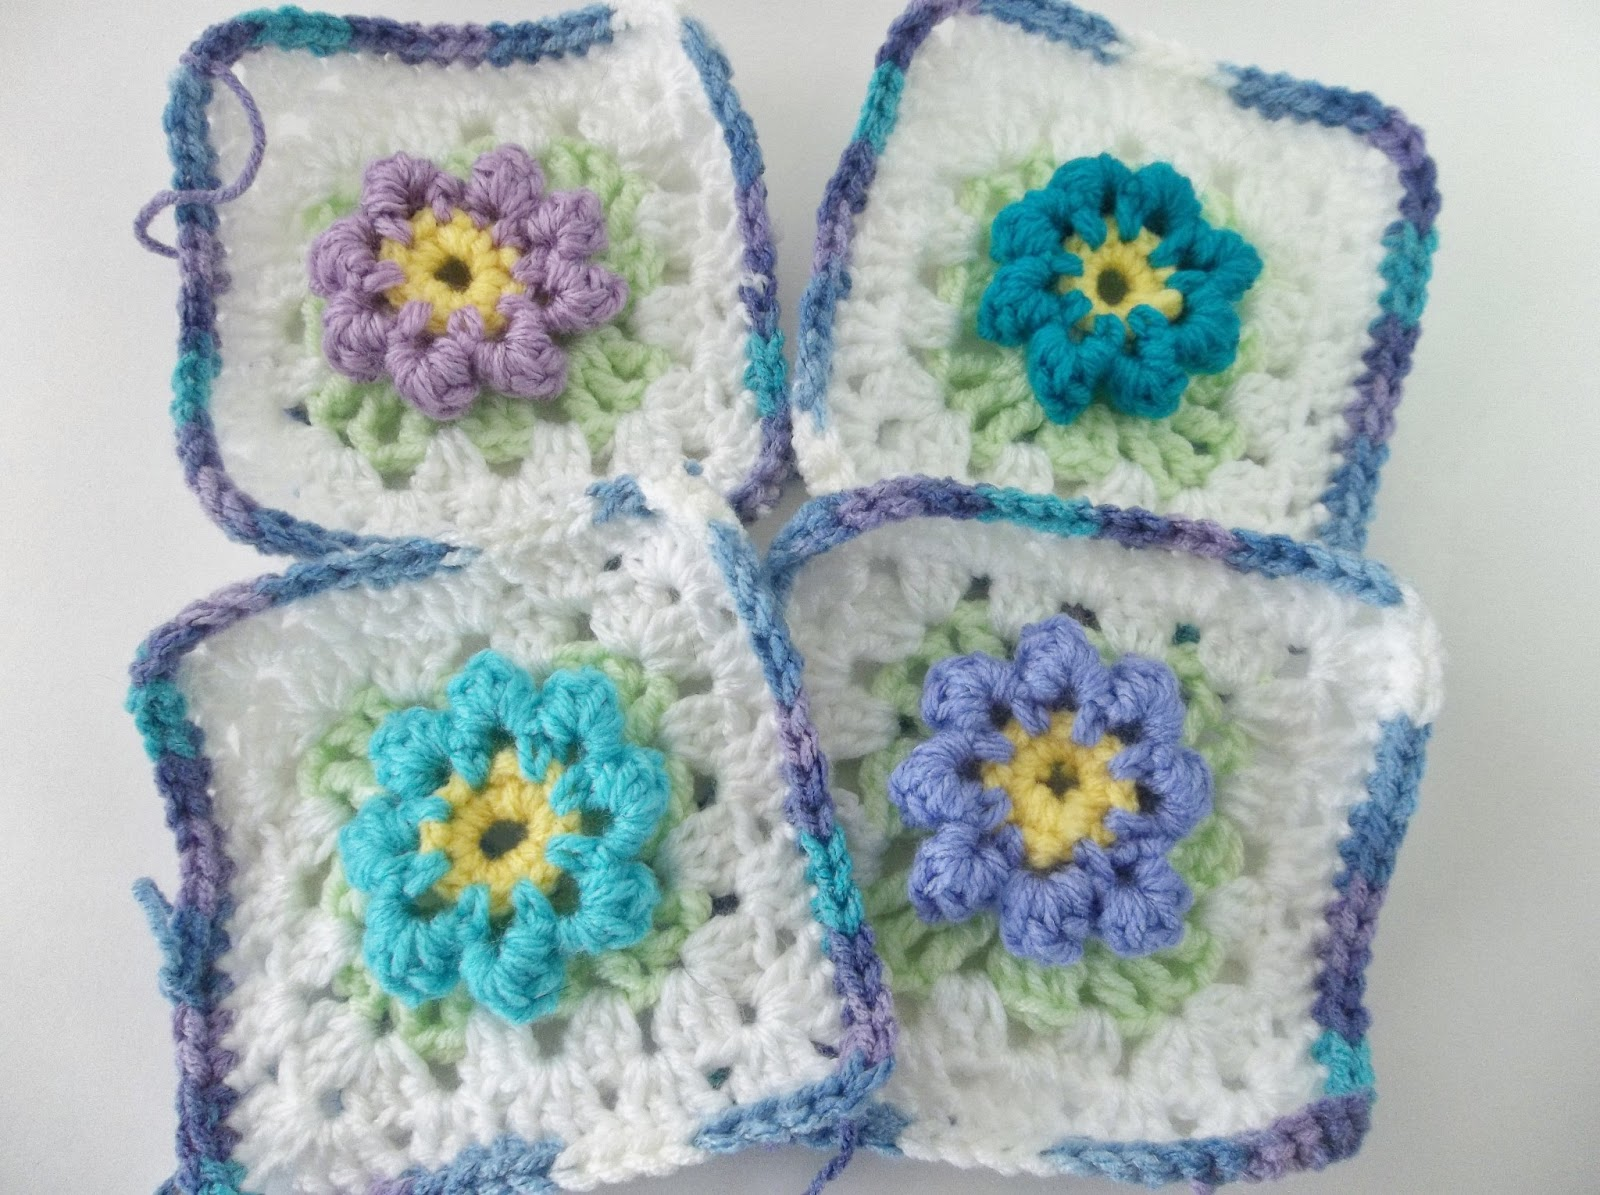 Creating Beautiful Things in Life: Easy Granny Square with Center Flower